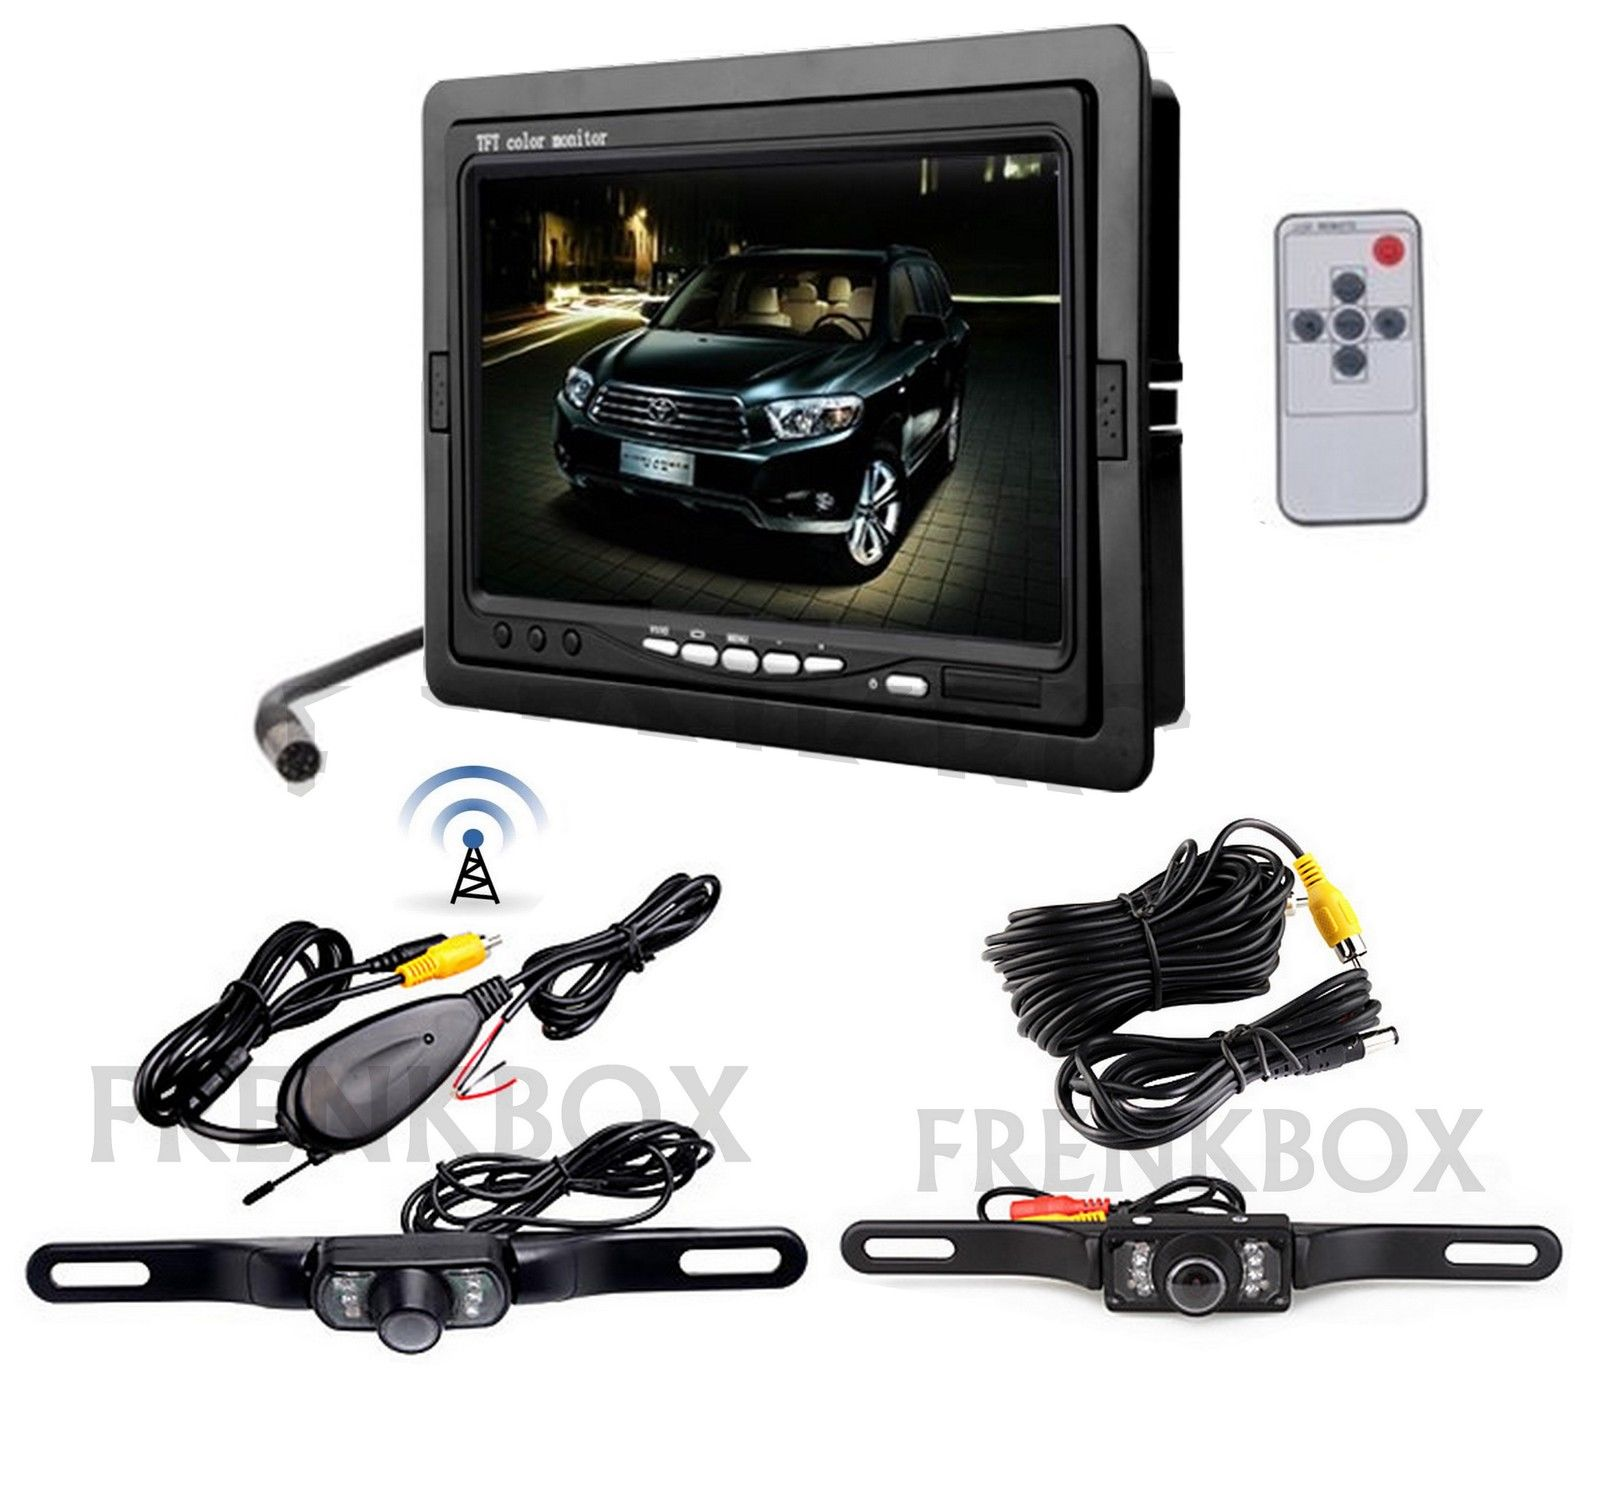 "Kit retromarcia auto camper Monitor 7"" LCD 2 telecamere: wireless e via cavo"